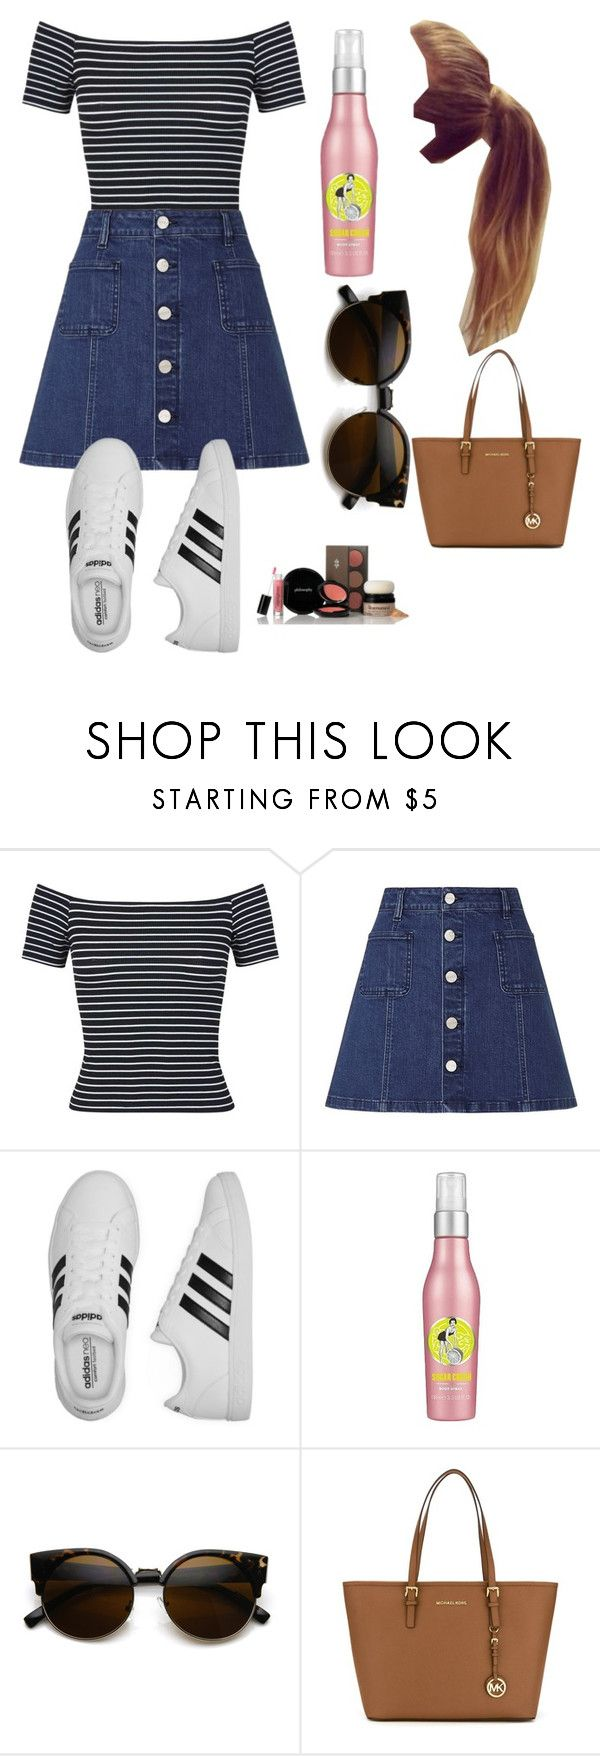 """""""Backstage with Westlife (Kian's fiancée)"""" by xkidinthedarkx ❤ liked on Polyvore featuring Miss Selfridge, Lipsy, adidas, Soap & Glory, ZeroUV, MICHAEL Michael Kors and philosophy"""